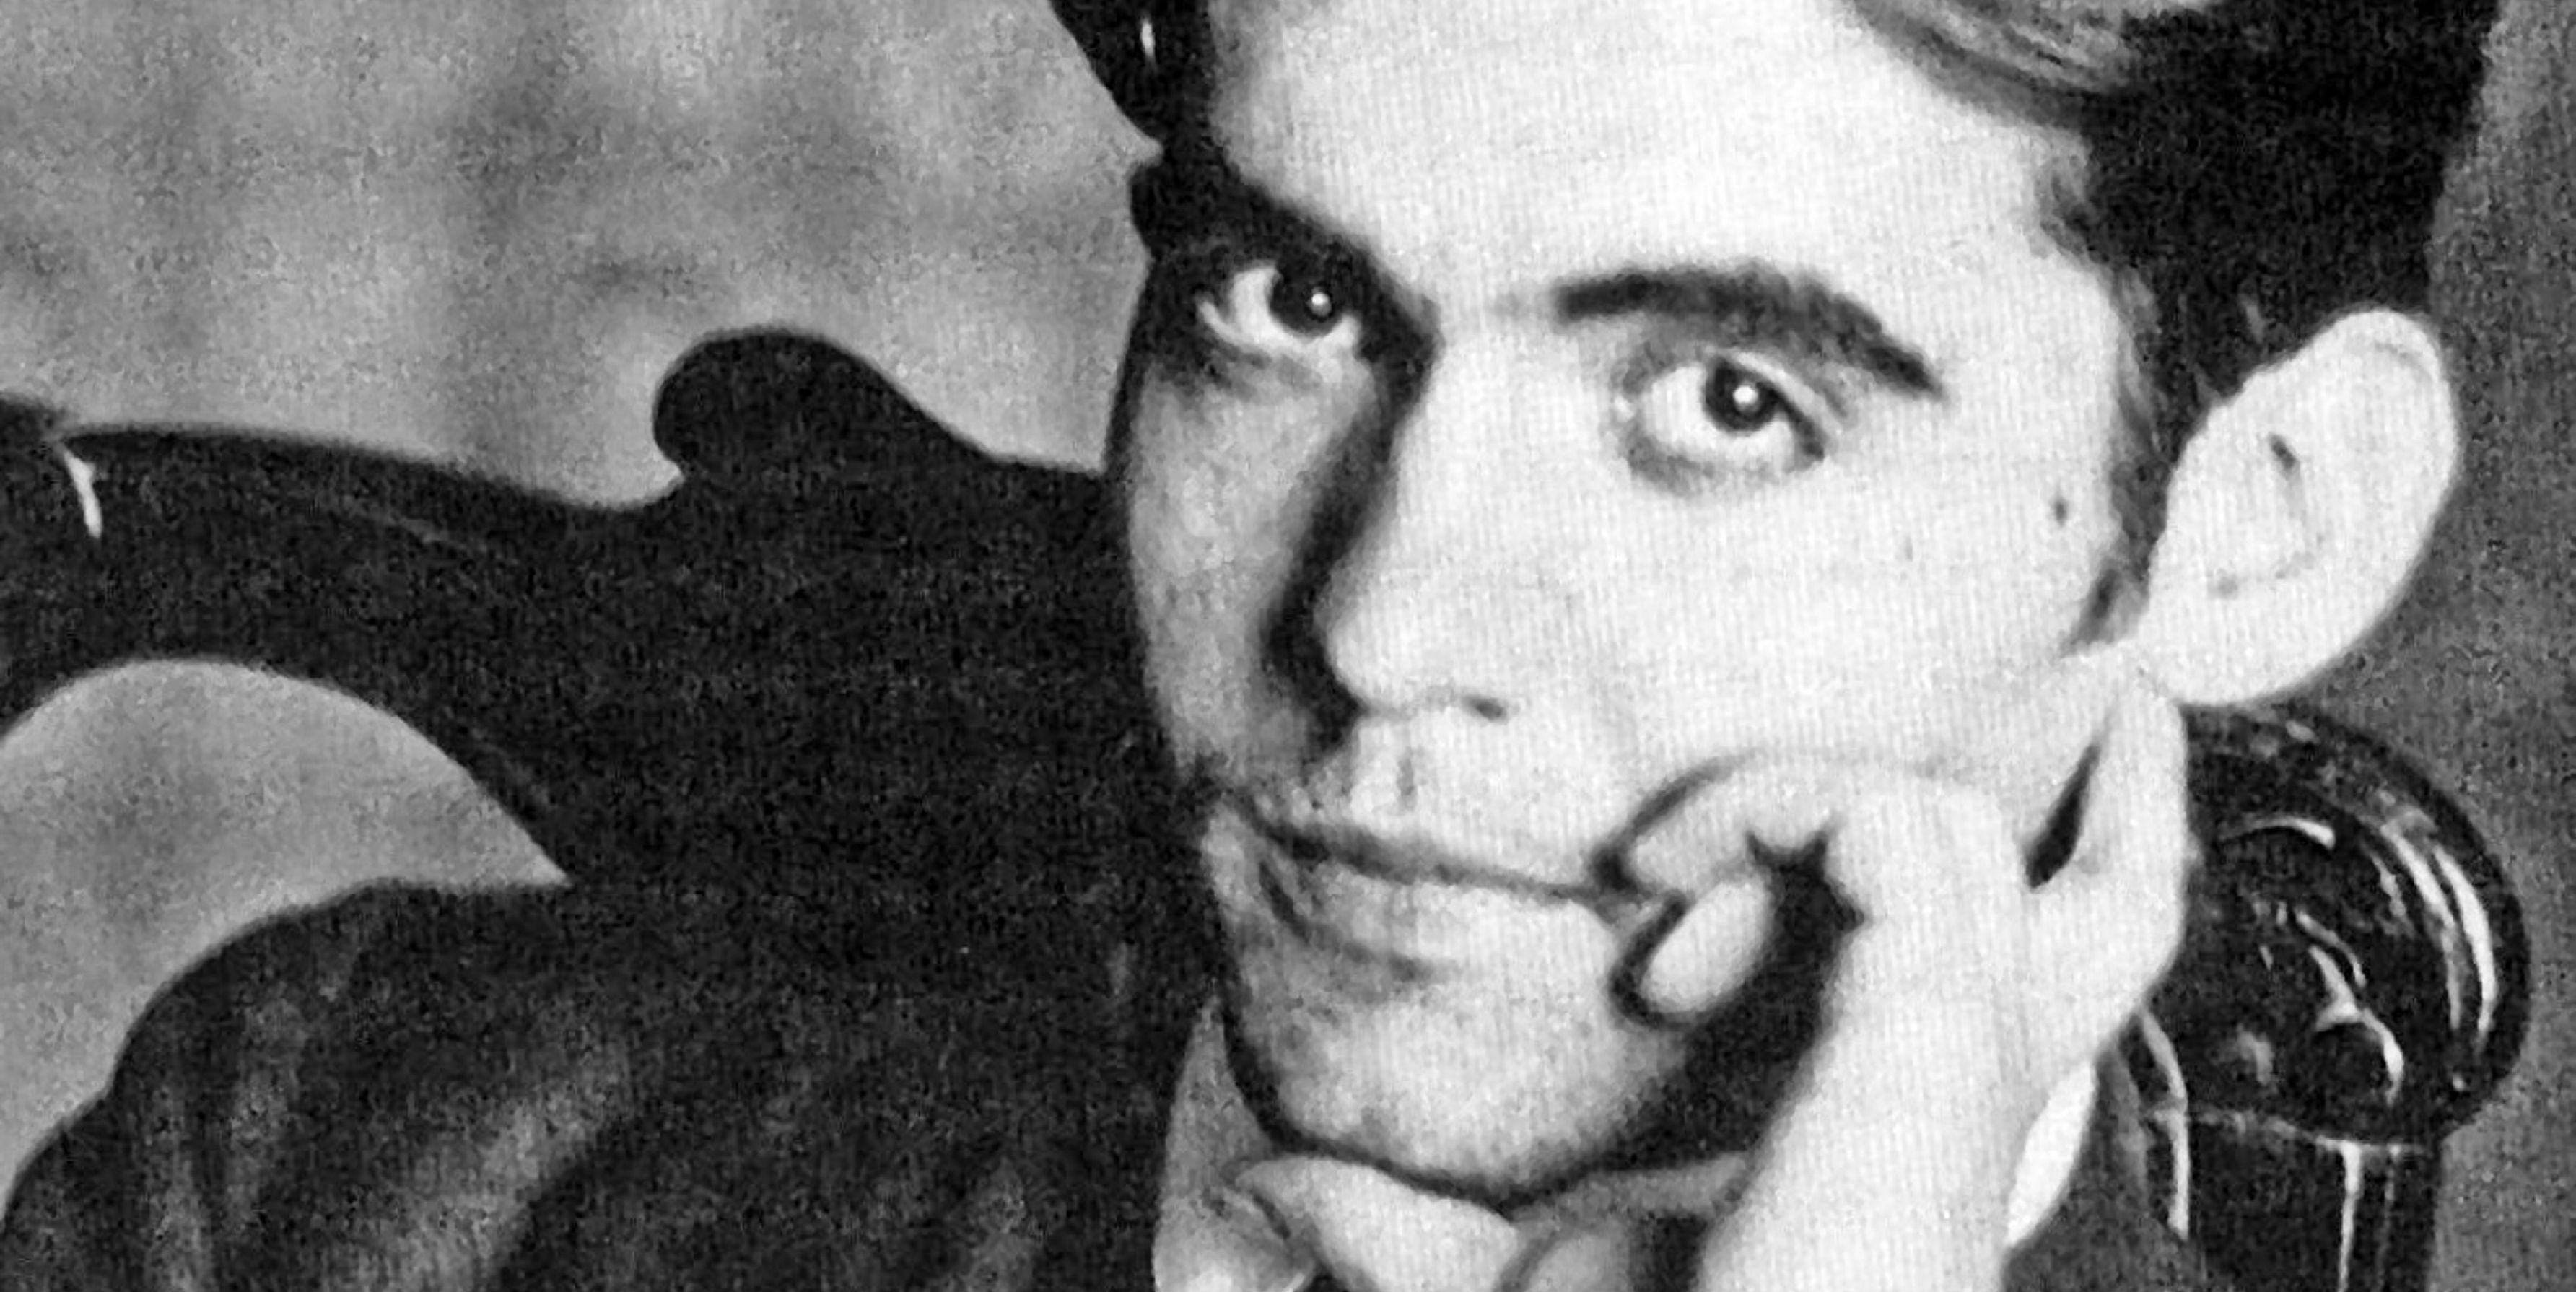 Lorca mejores frases